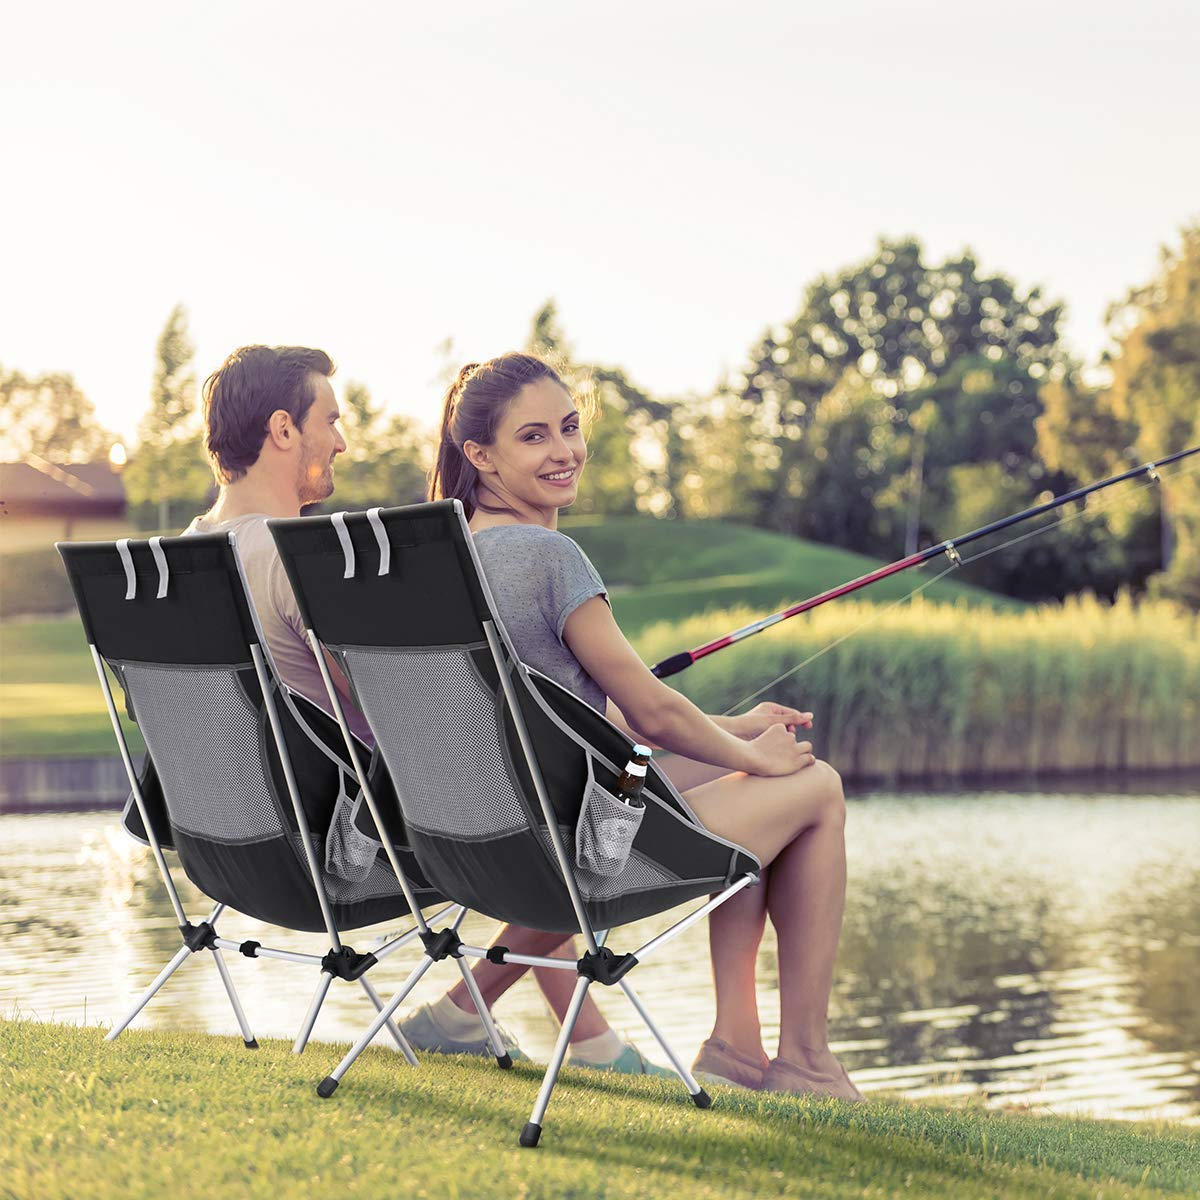 MOVTOTOP Folding Beach Camping Chair, Newest 2019 Portable Outdoor Backpack Camping Chair, High Back Rest Beach Chairs with Carry Bag Heavy Duty 300 lbs Capacity